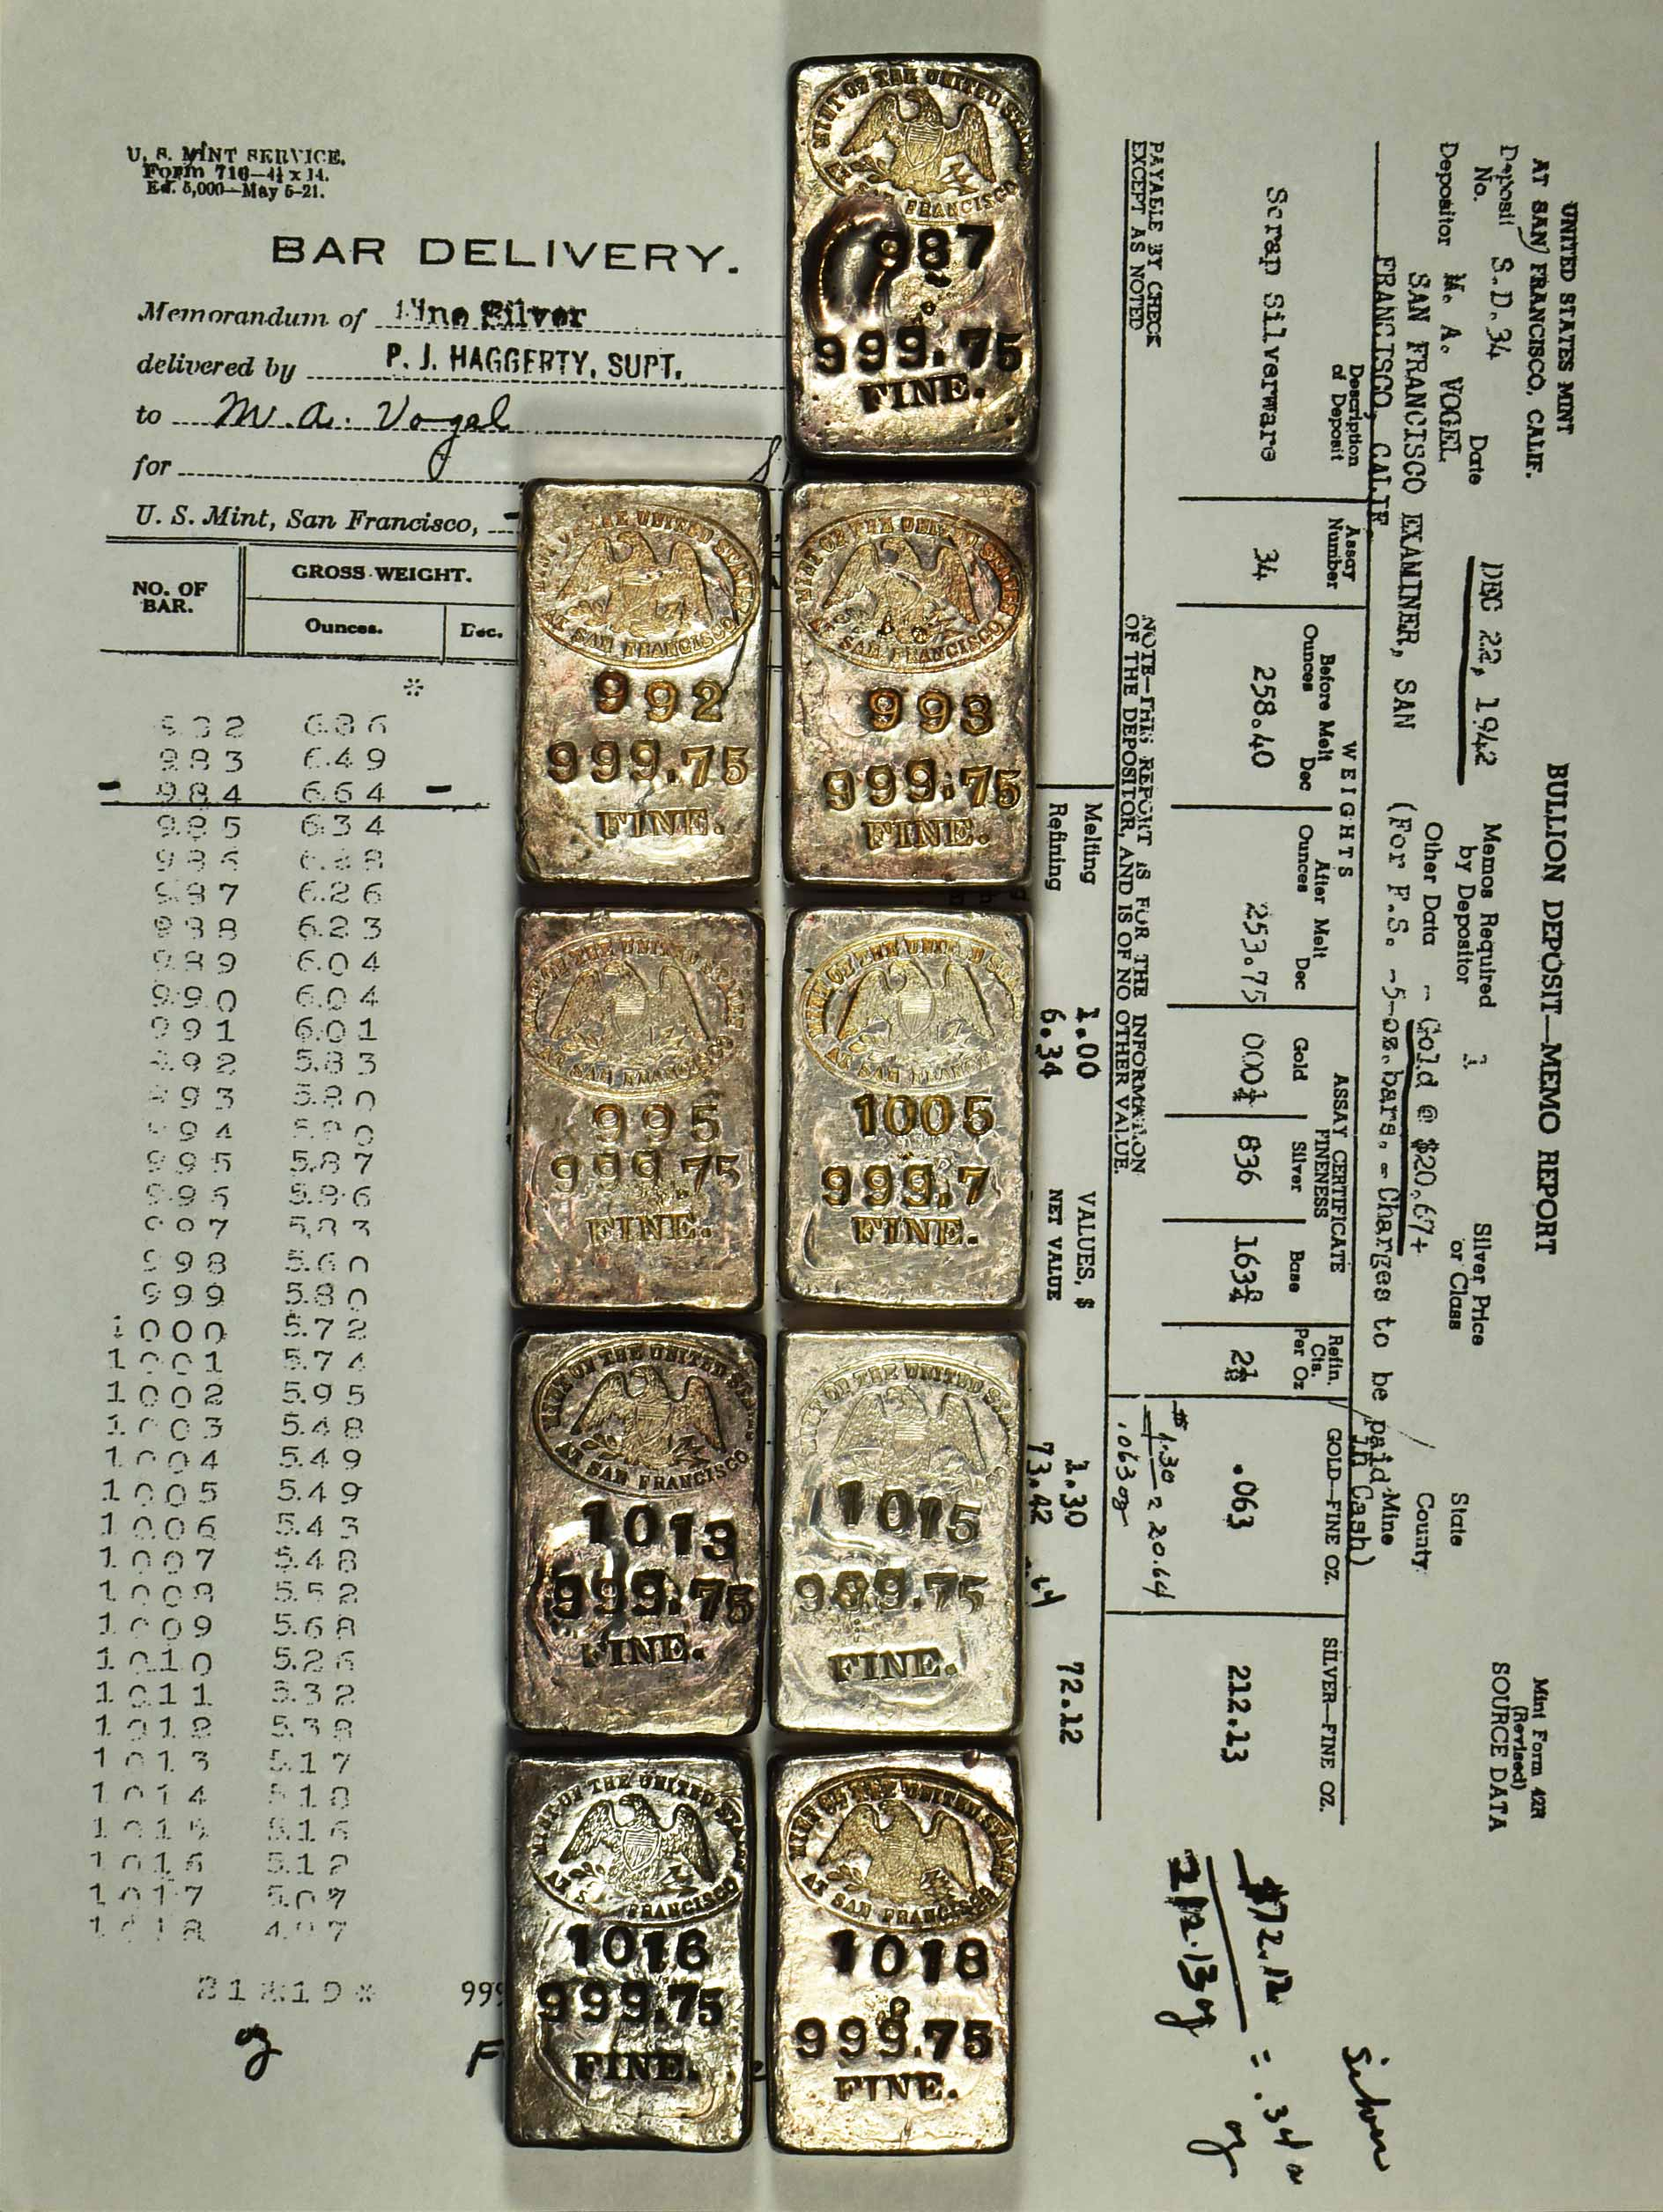 1942 Receipt With Ingots